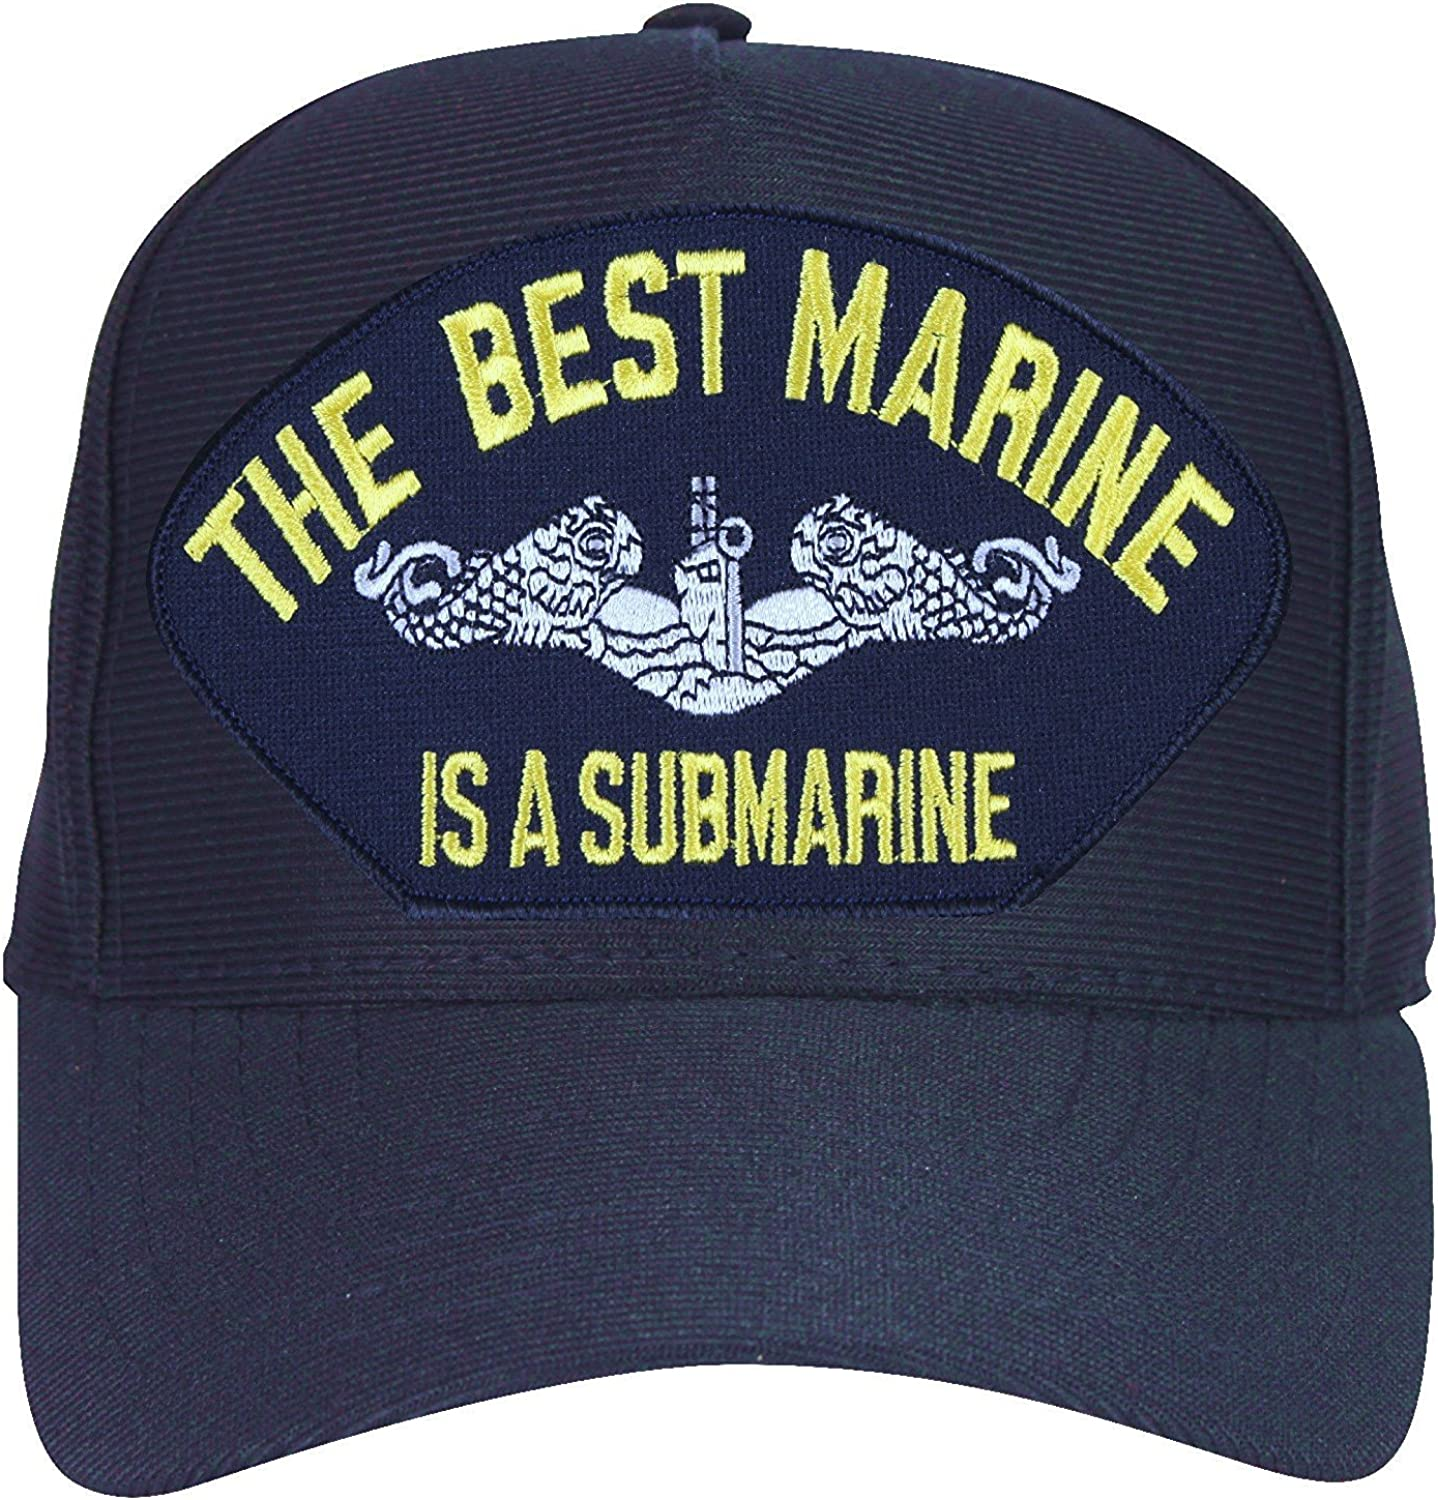 Navy Blue Made in USA The Best Marine is a Submarine Baseball Cap